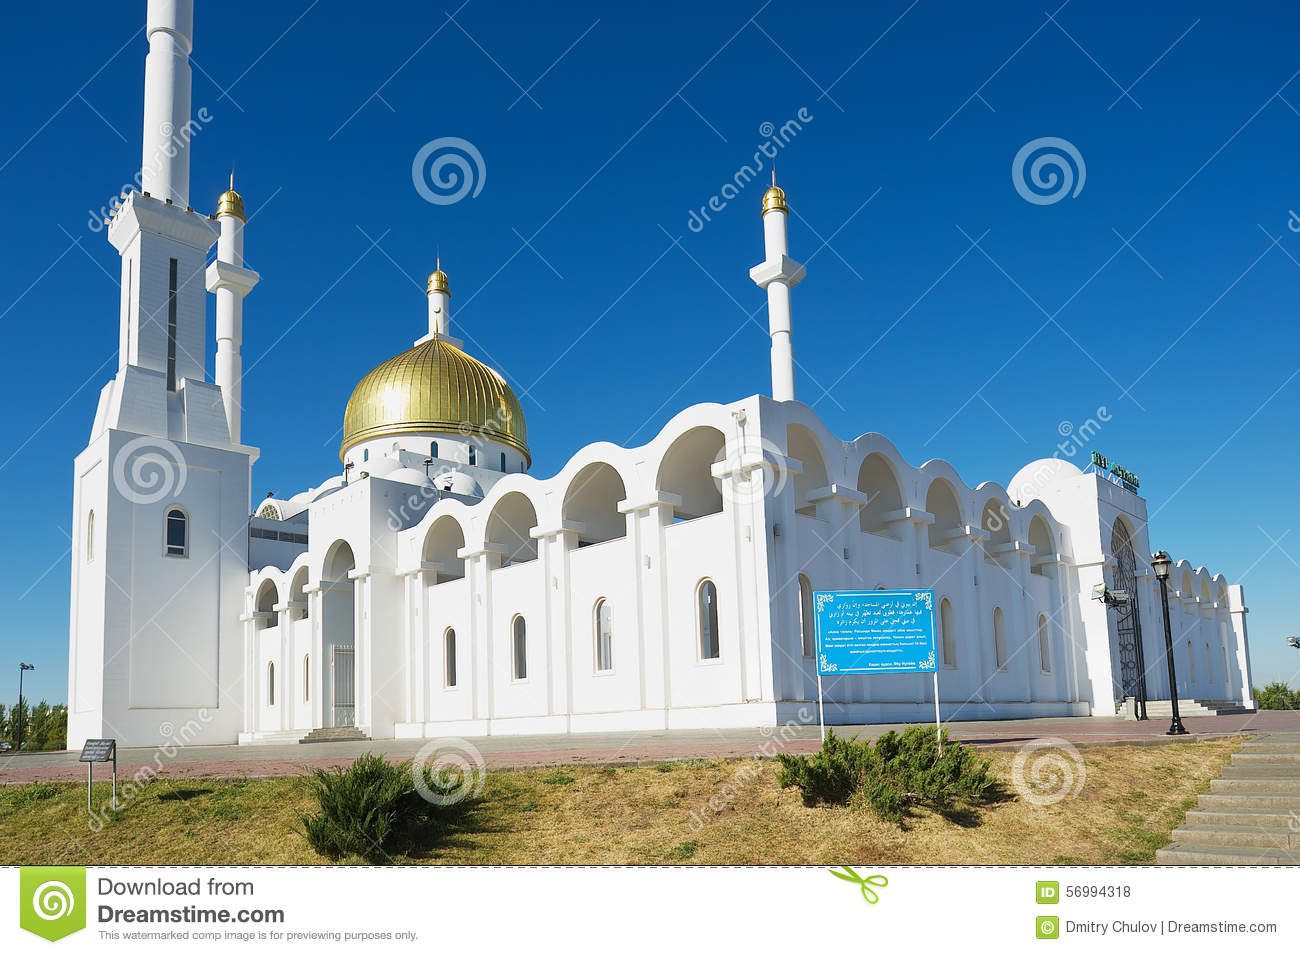 Exterior of the nur astana mosque in astana kazakhstan for Mosque exterior design